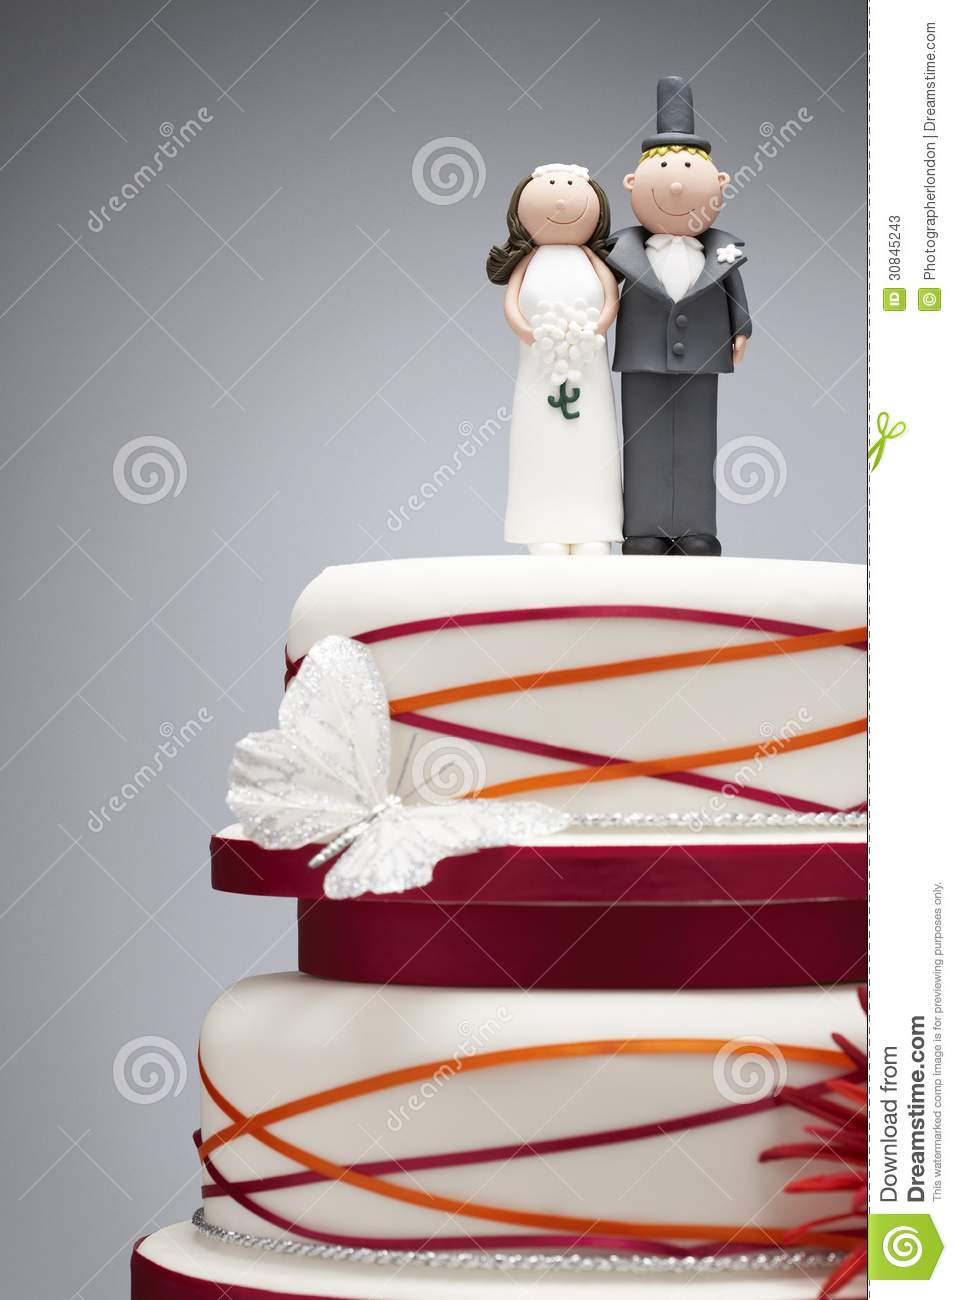 bride and groom figurines for wedding cakes comical and groom figurines on top of wedding cake 12121